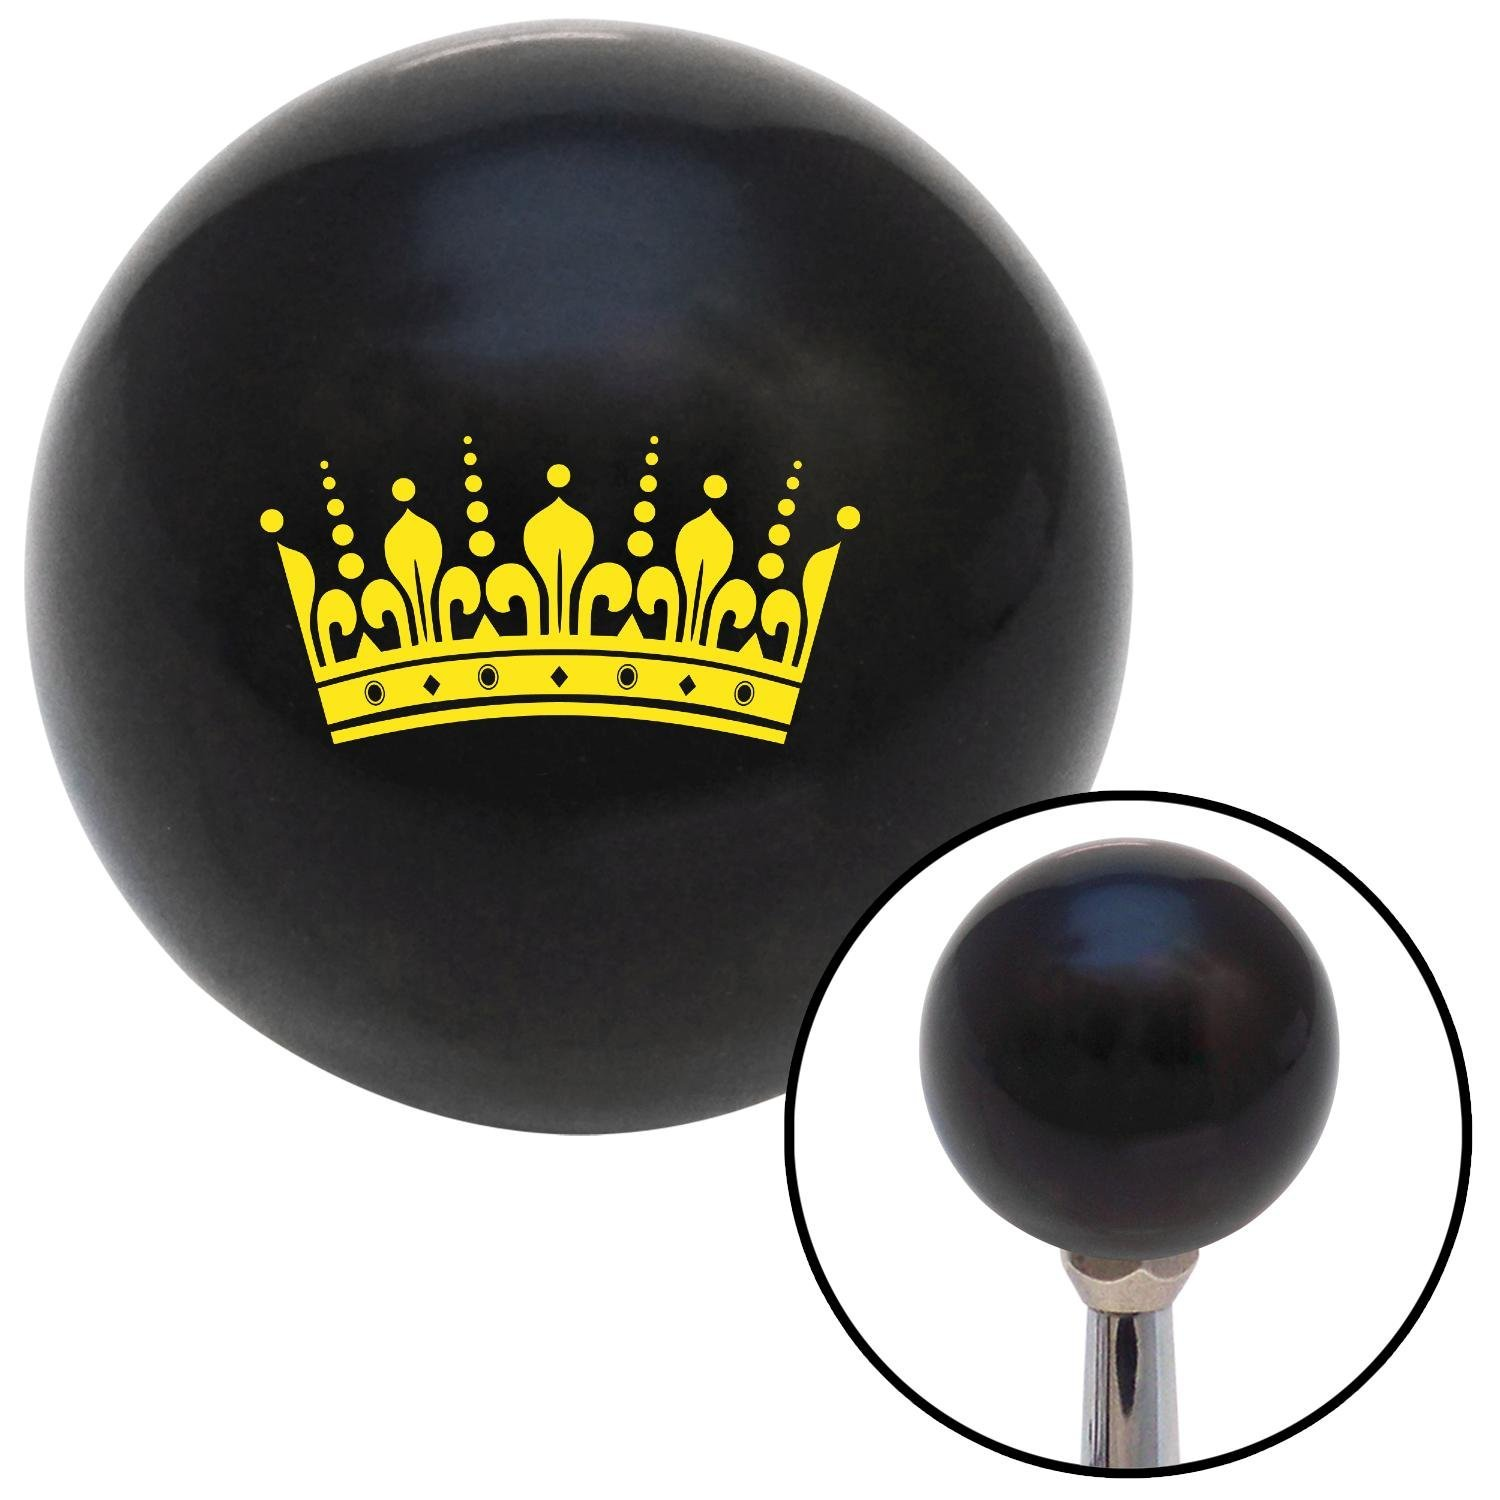 American Shifter 104631 Black Shift Knob with M16 x 1.5 Insert Yellow Kings Crown